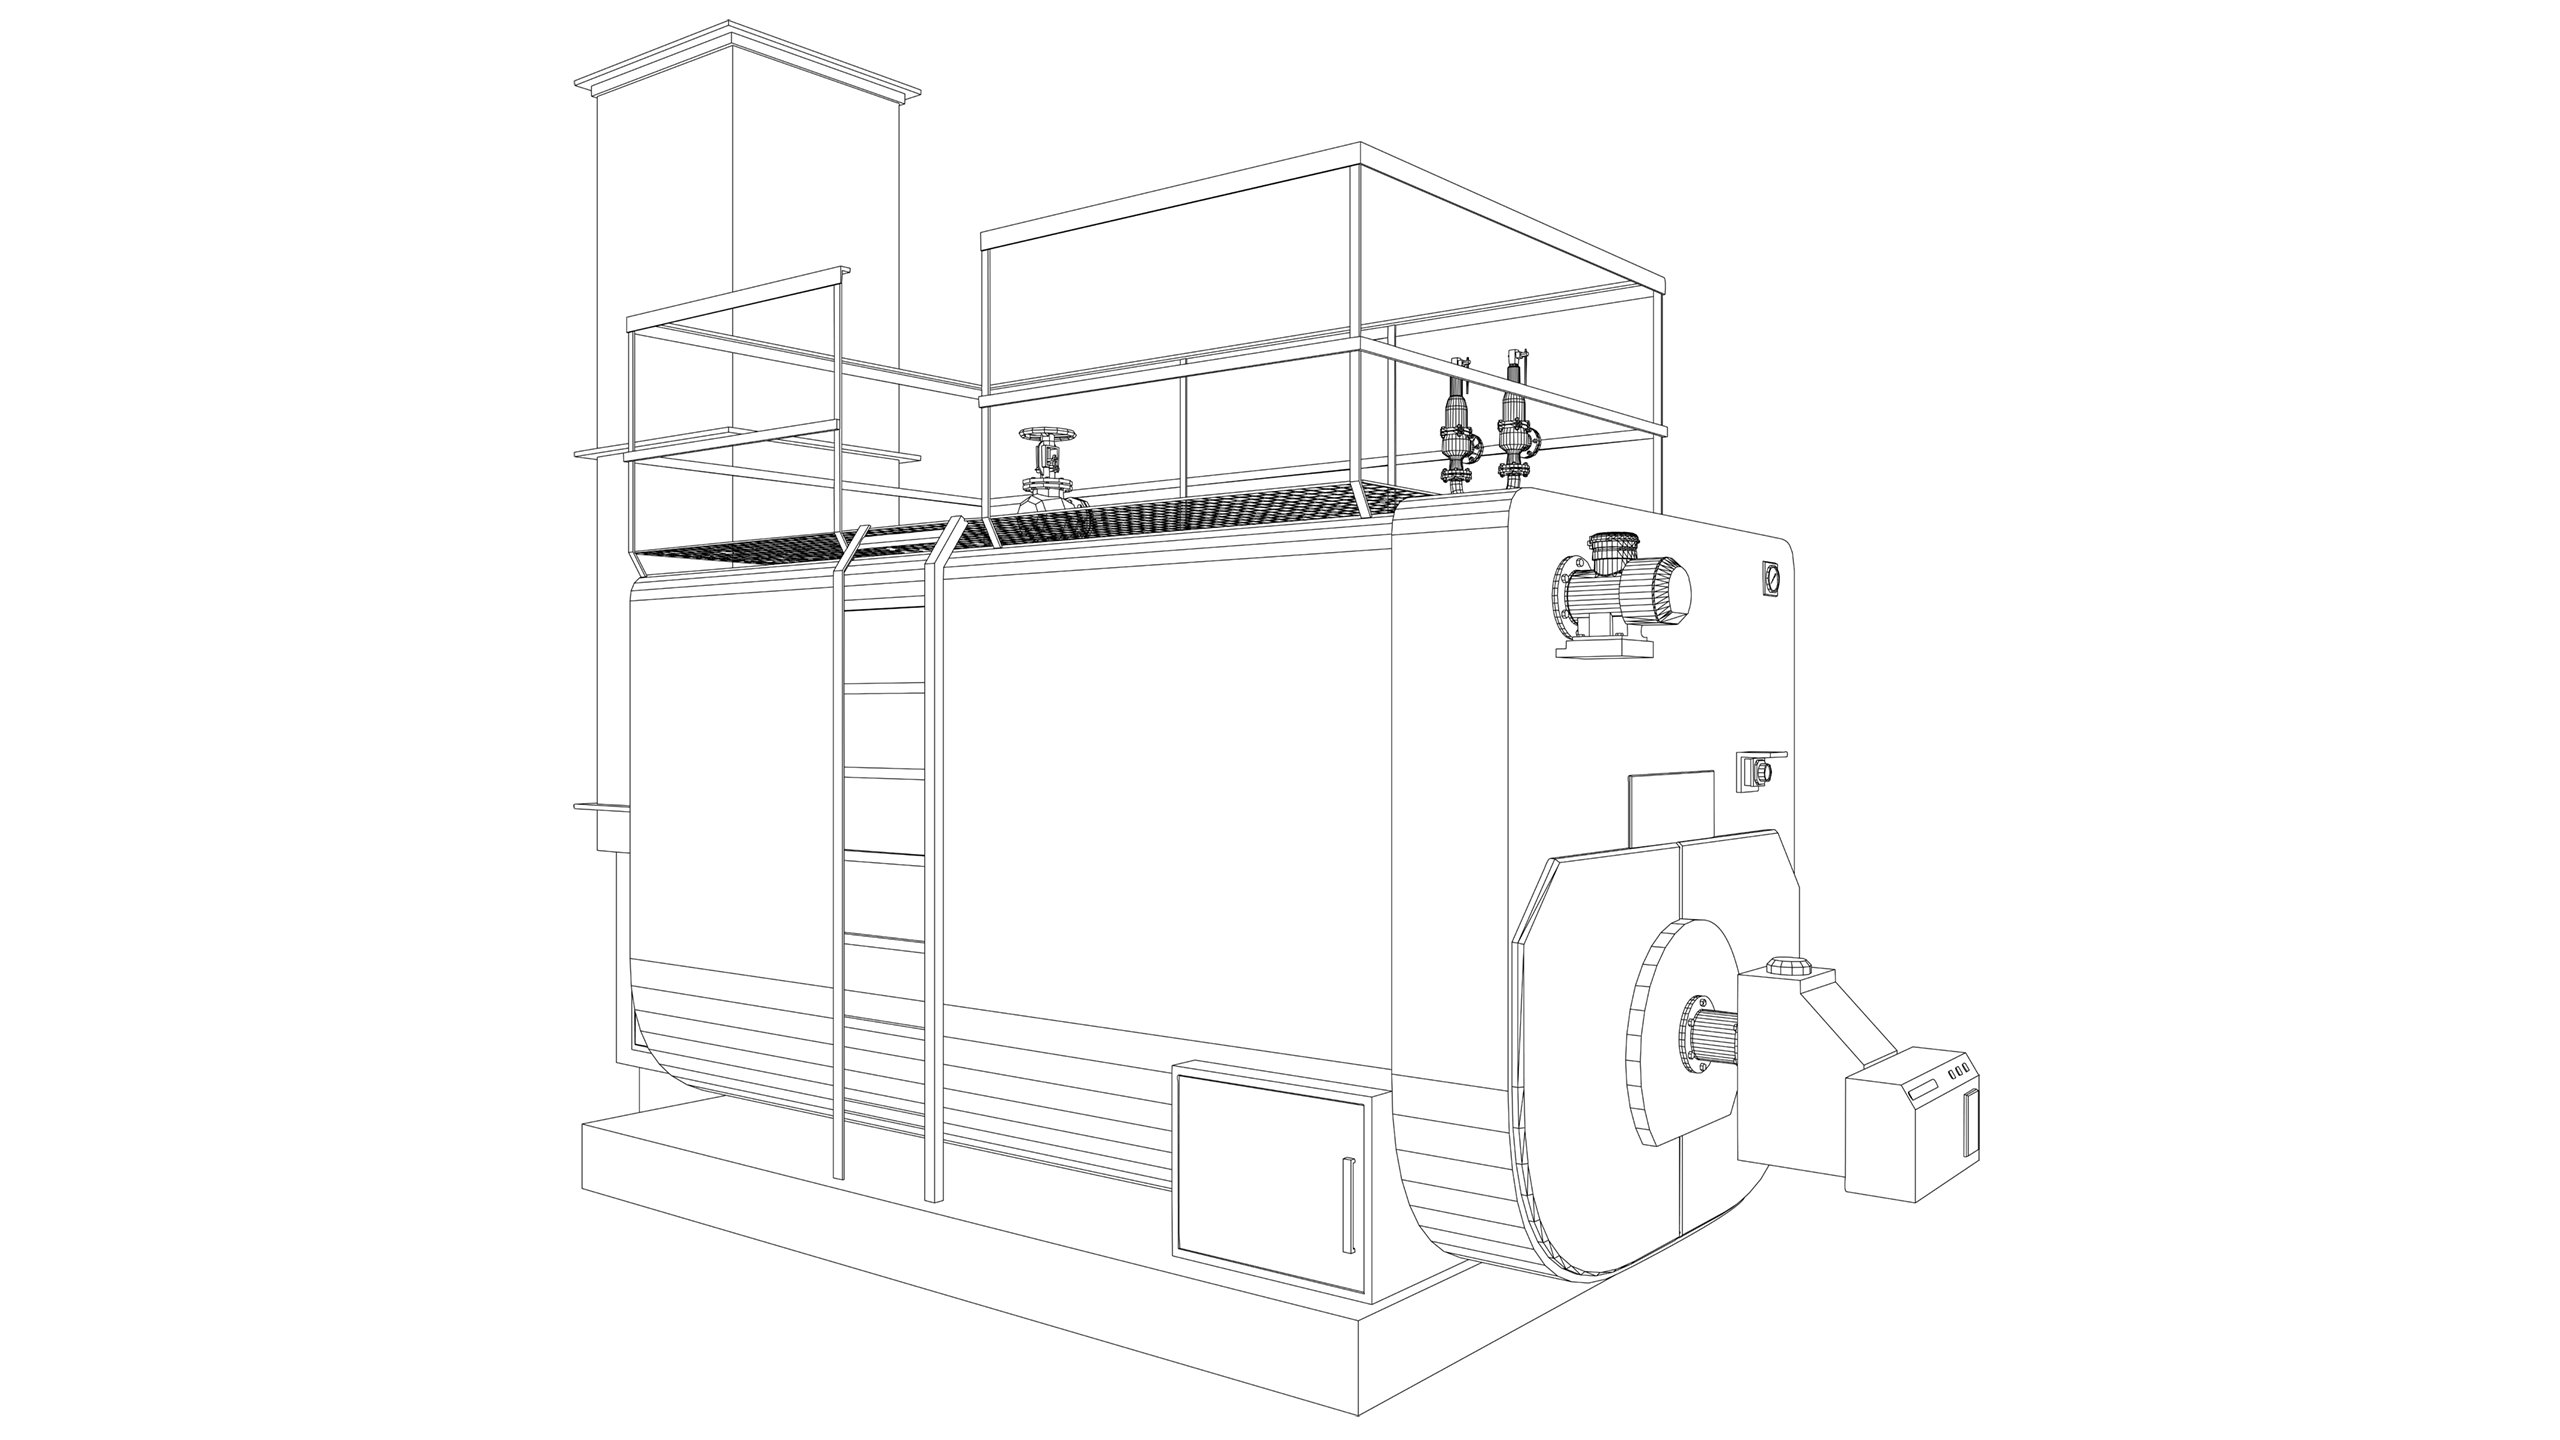 Vector Image: Pressurised Hot Water Boiler (High Temp)